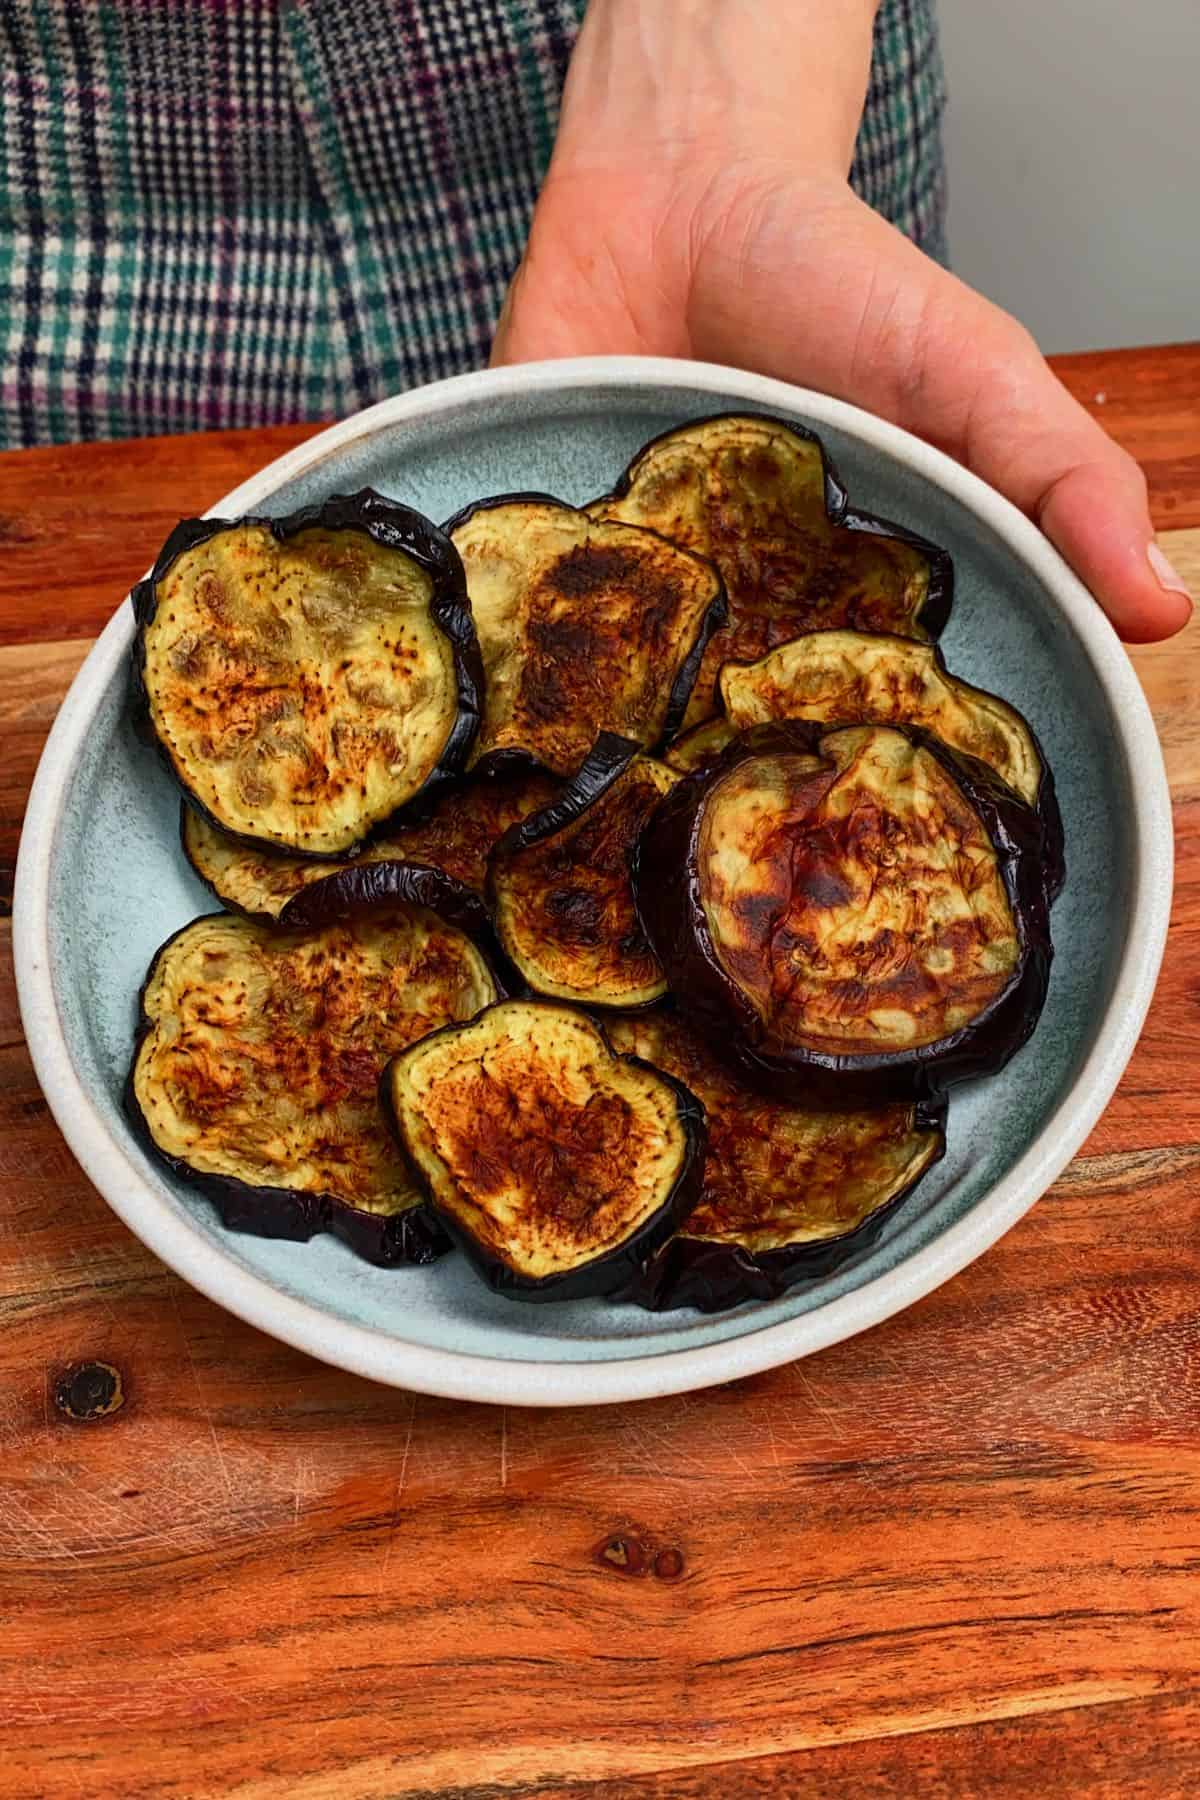 Grilled eggplant slices in a late